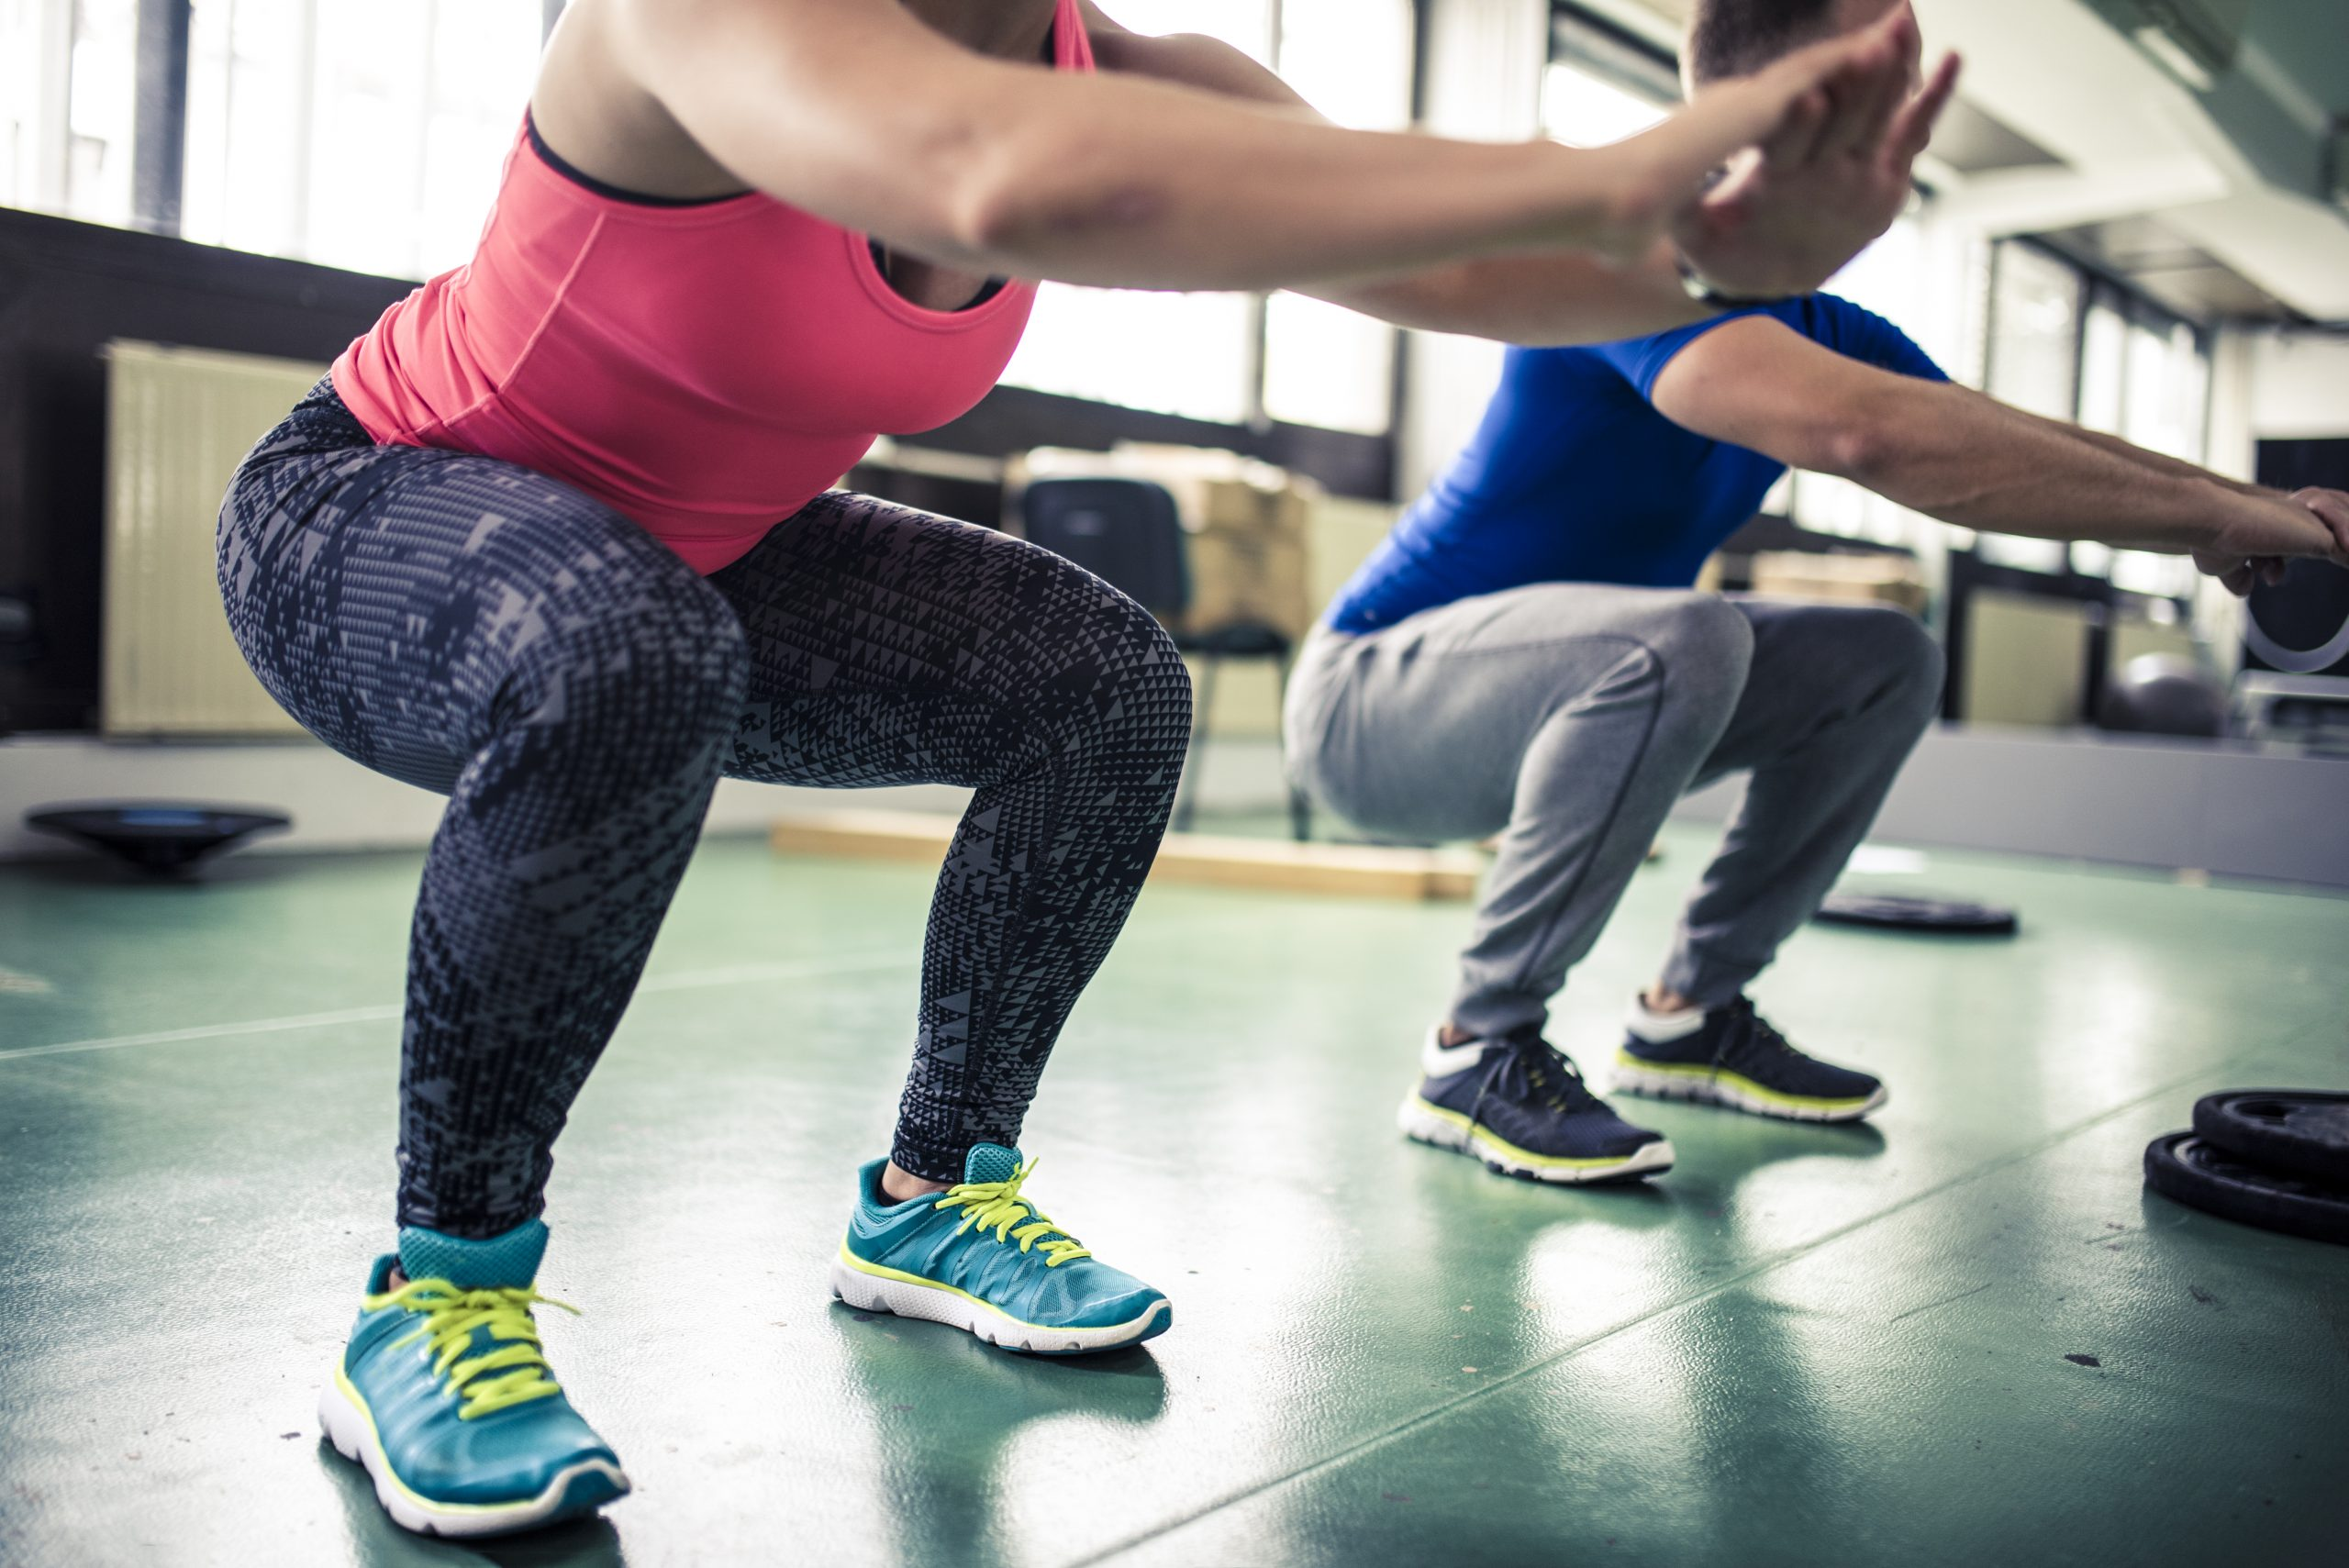 What's the Hype with HIIT? (High Intensity Interval Training)